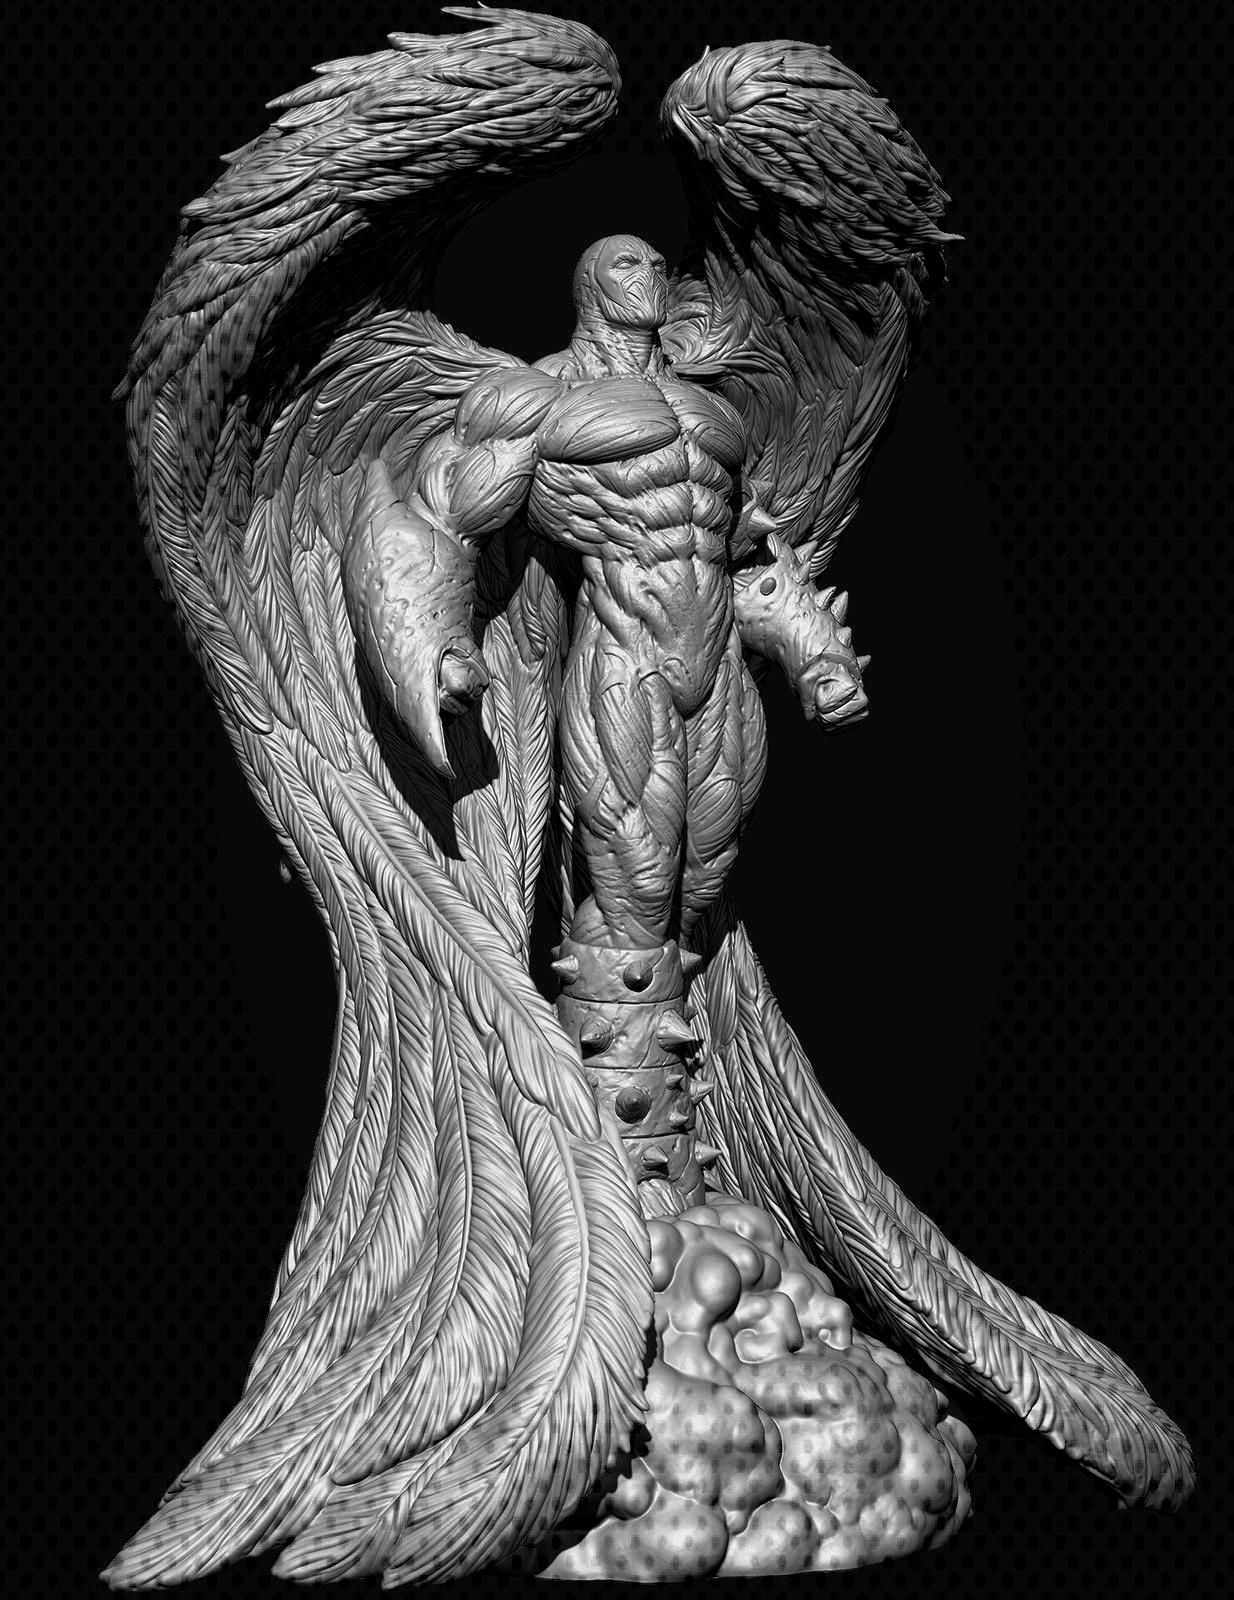 Angel Spawn  Zbrush details Miguel Hernandez Urbina  You can find Zbrush and more on our websiteAngel Spawn  Zbrush details Miguel Hernandez Urbina